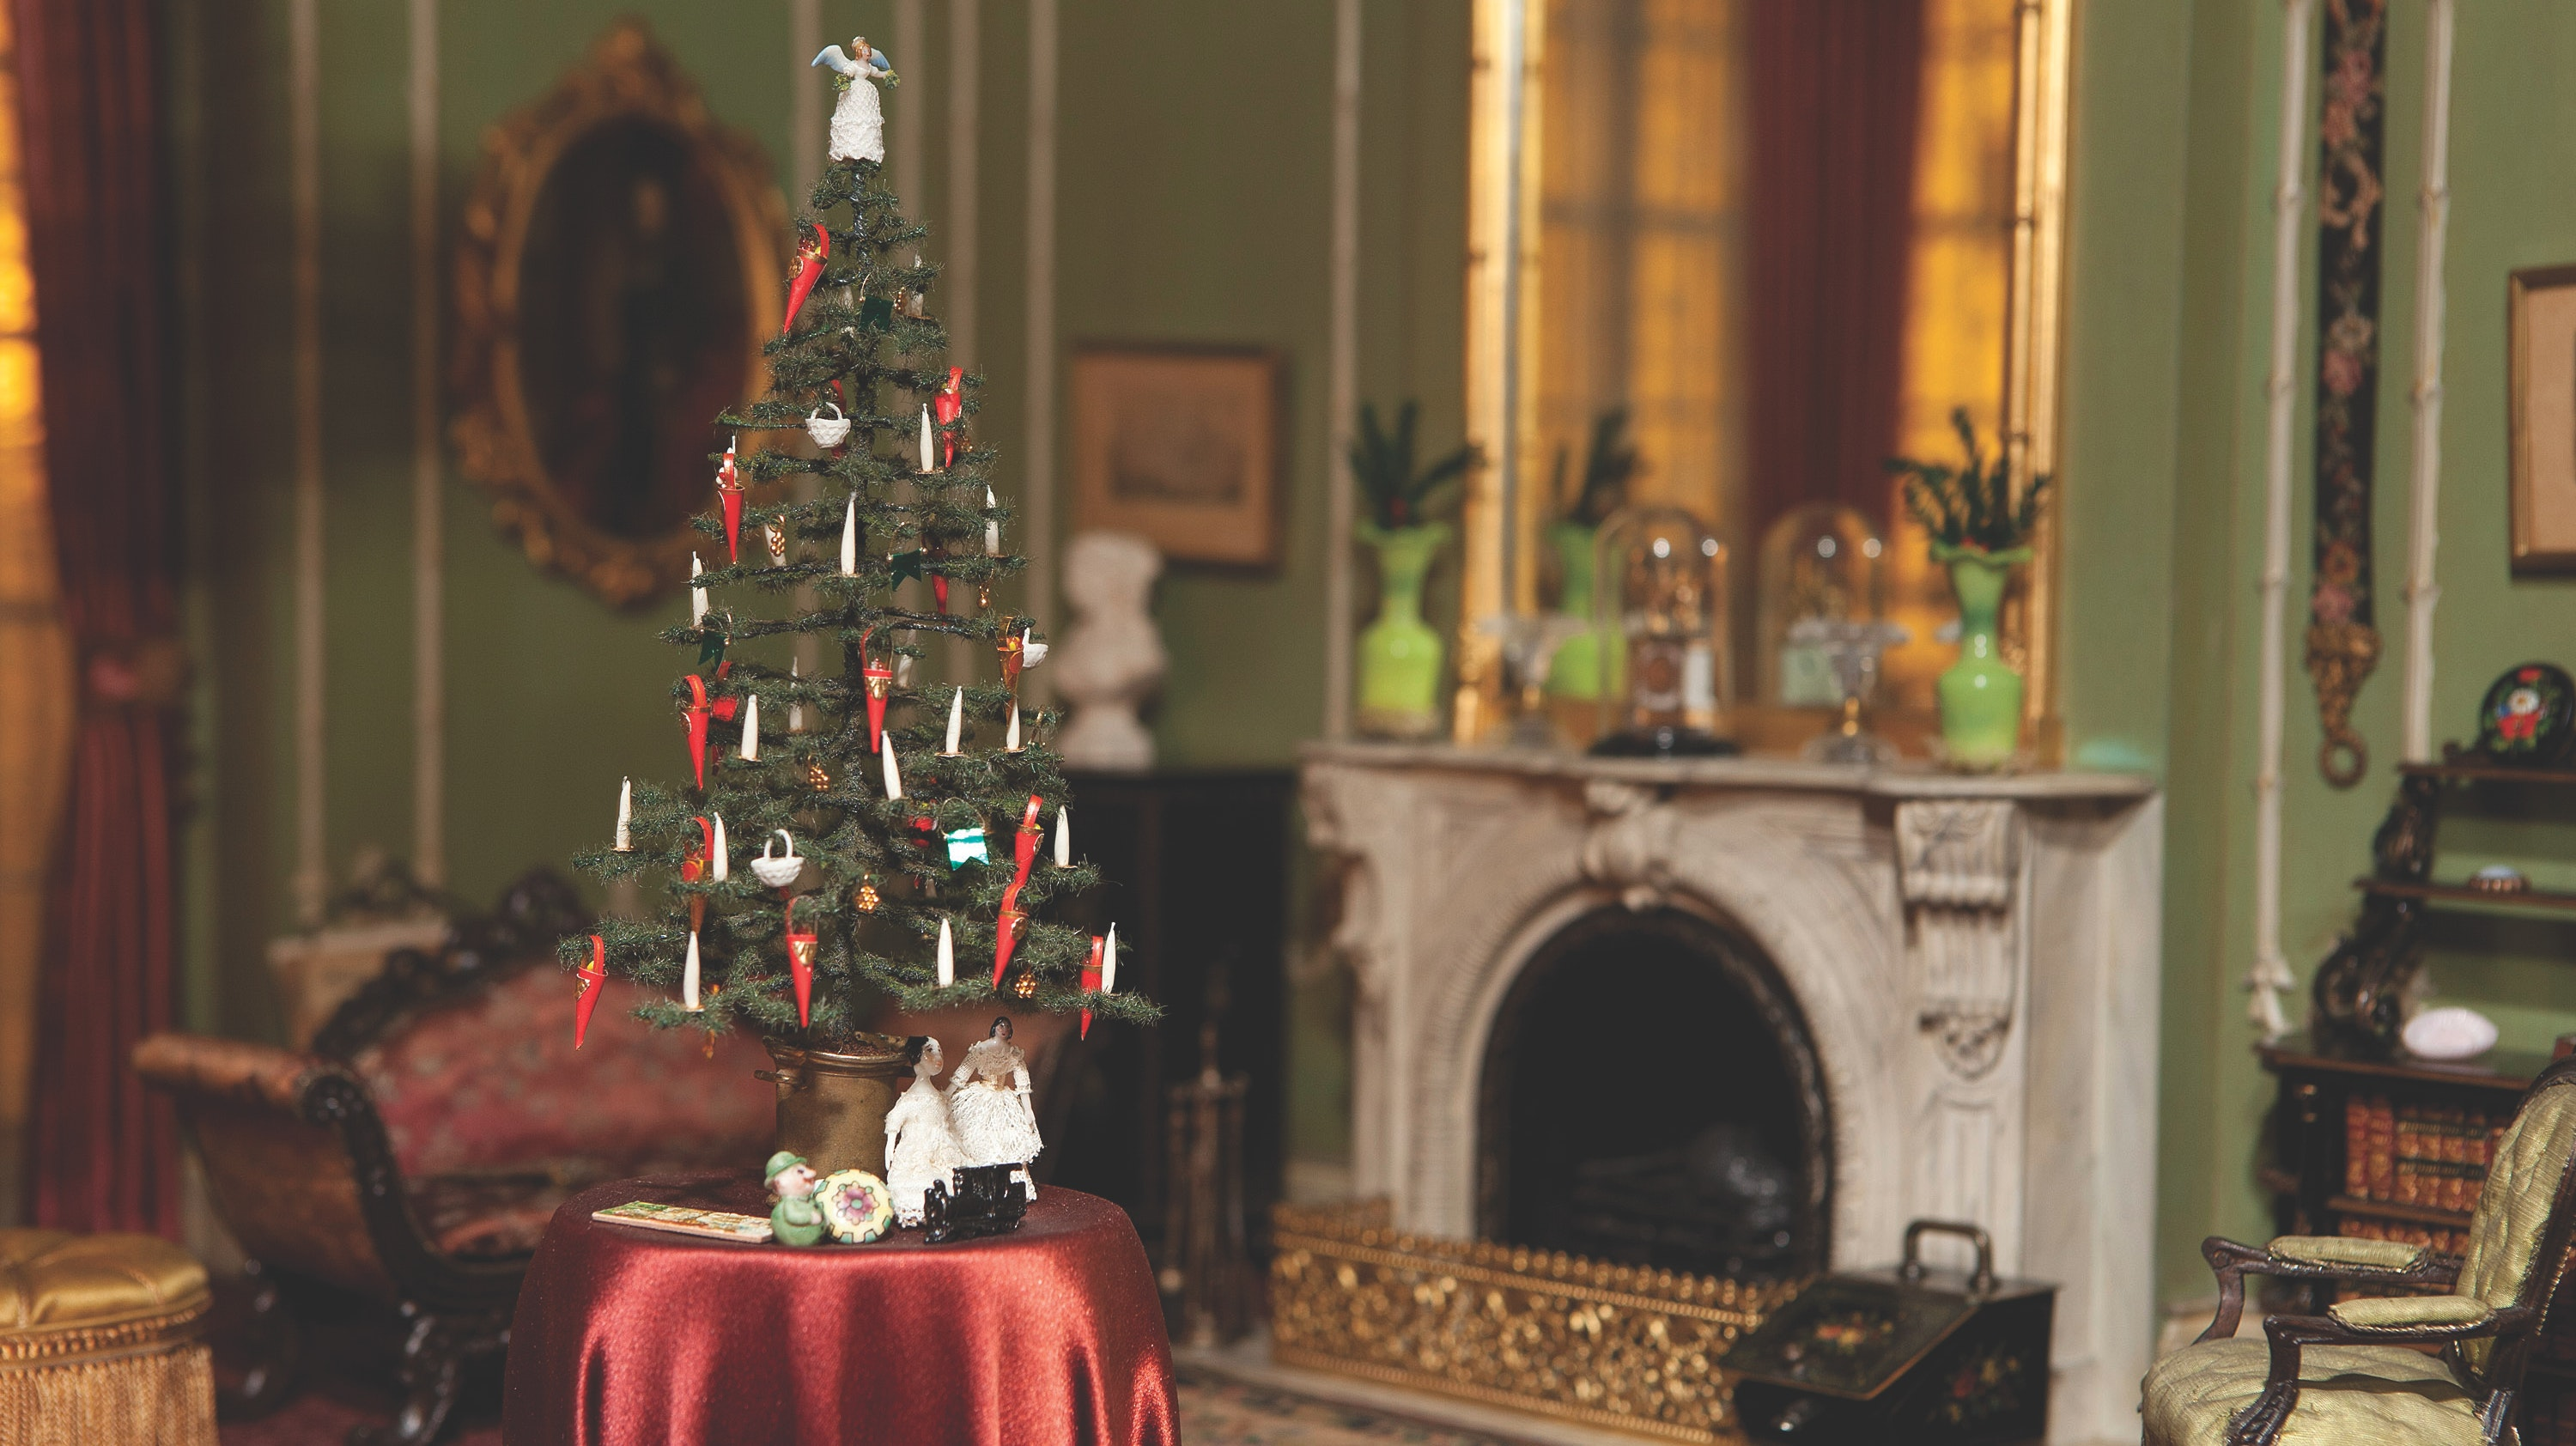 A photo of the Victorian Thorne Room decorated for the holidays. A small Christmas tree on a table covered in a red cloth is at the center of the image.